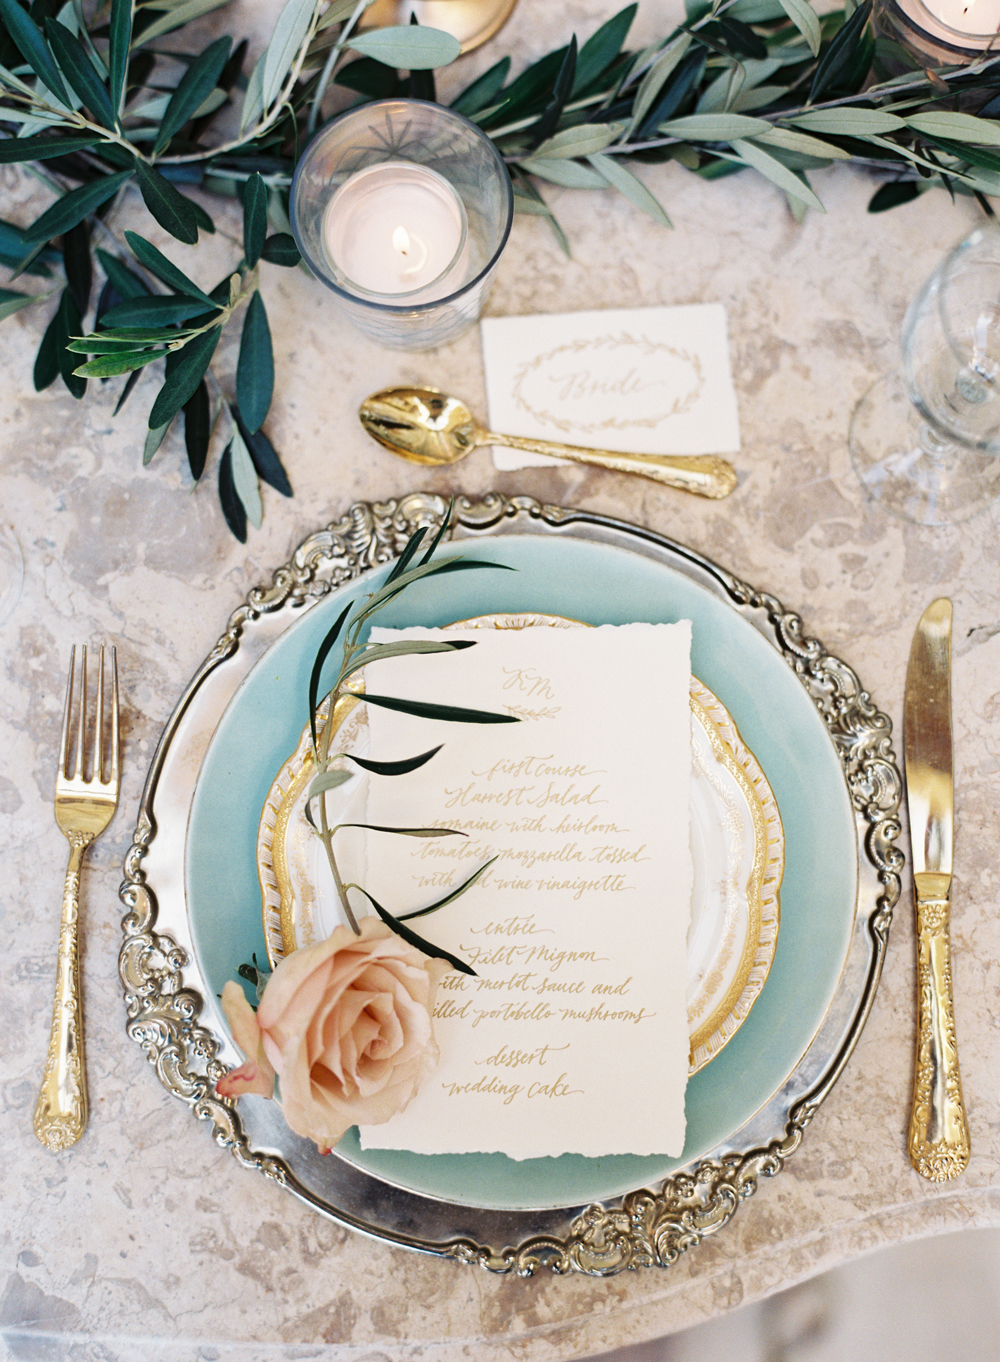 gold and silver place setting with a pink rose atop plate